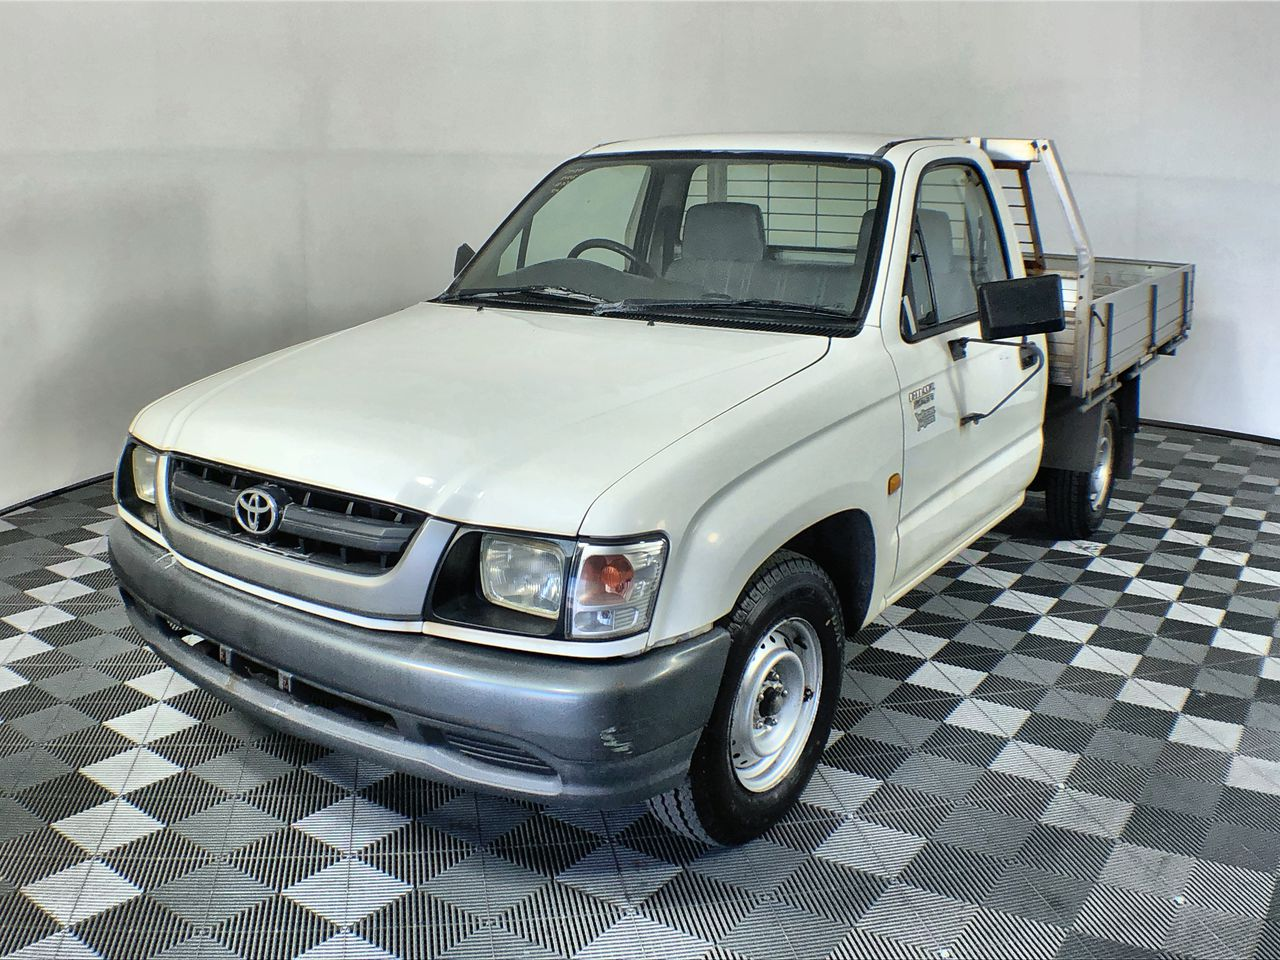 2004 Toyota Hilux 3 Seater Cab Chassis 61,597km